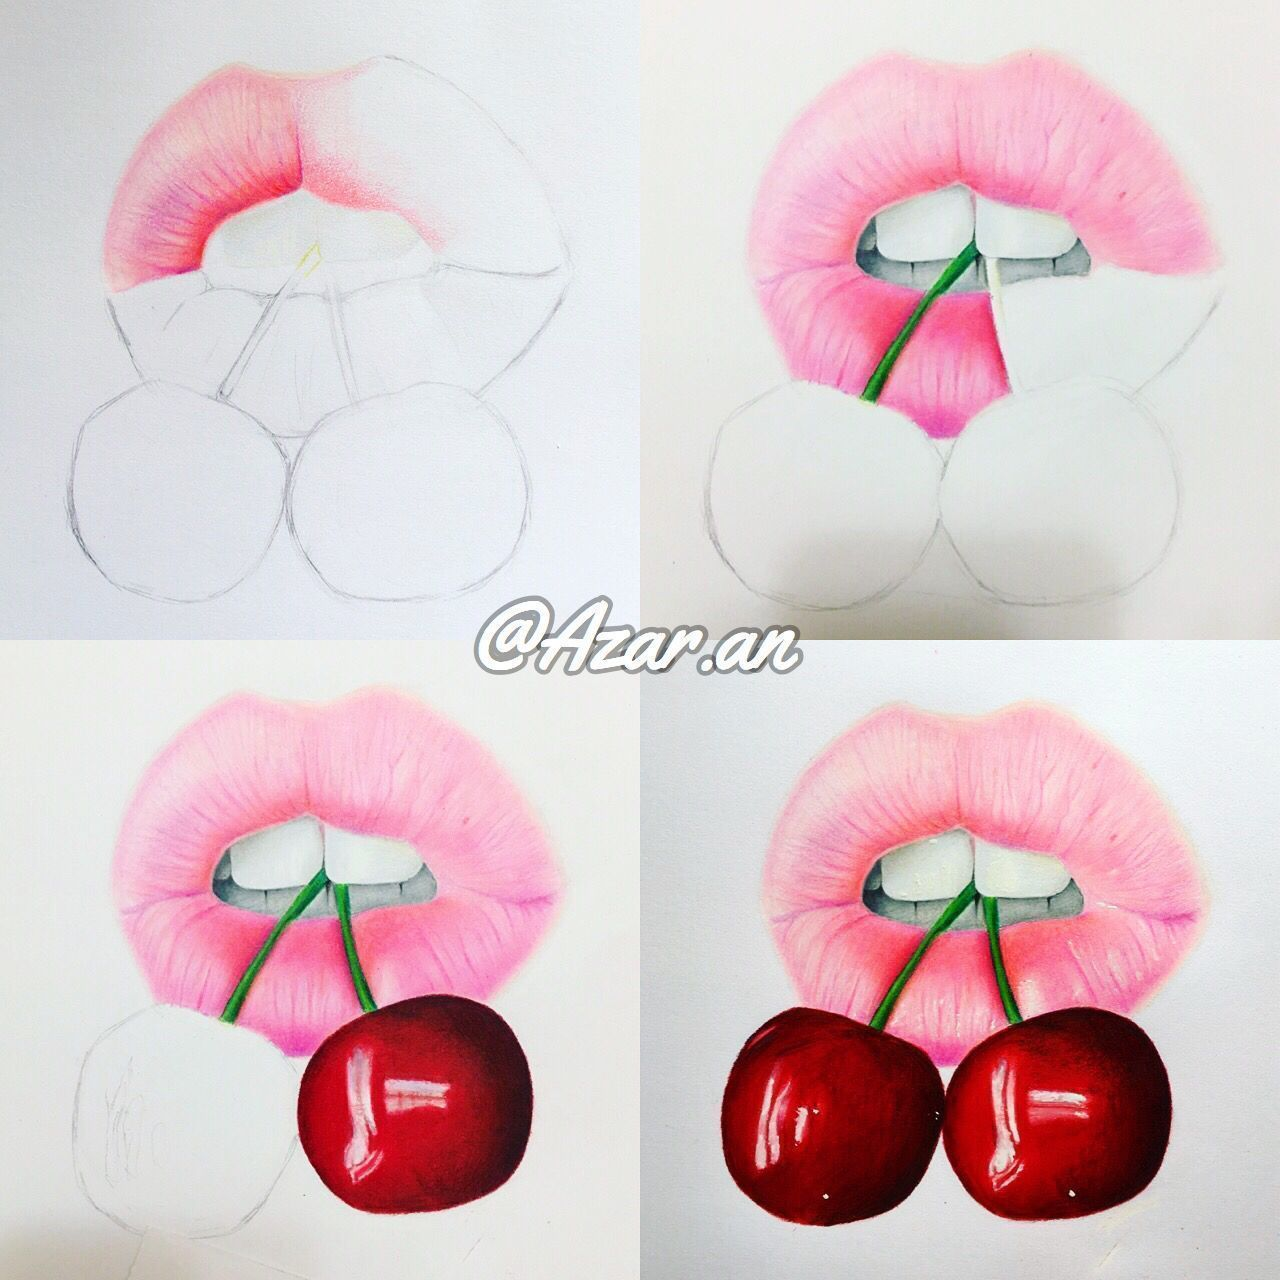 Lip Colored Pencil Drawing Lippencilcolors